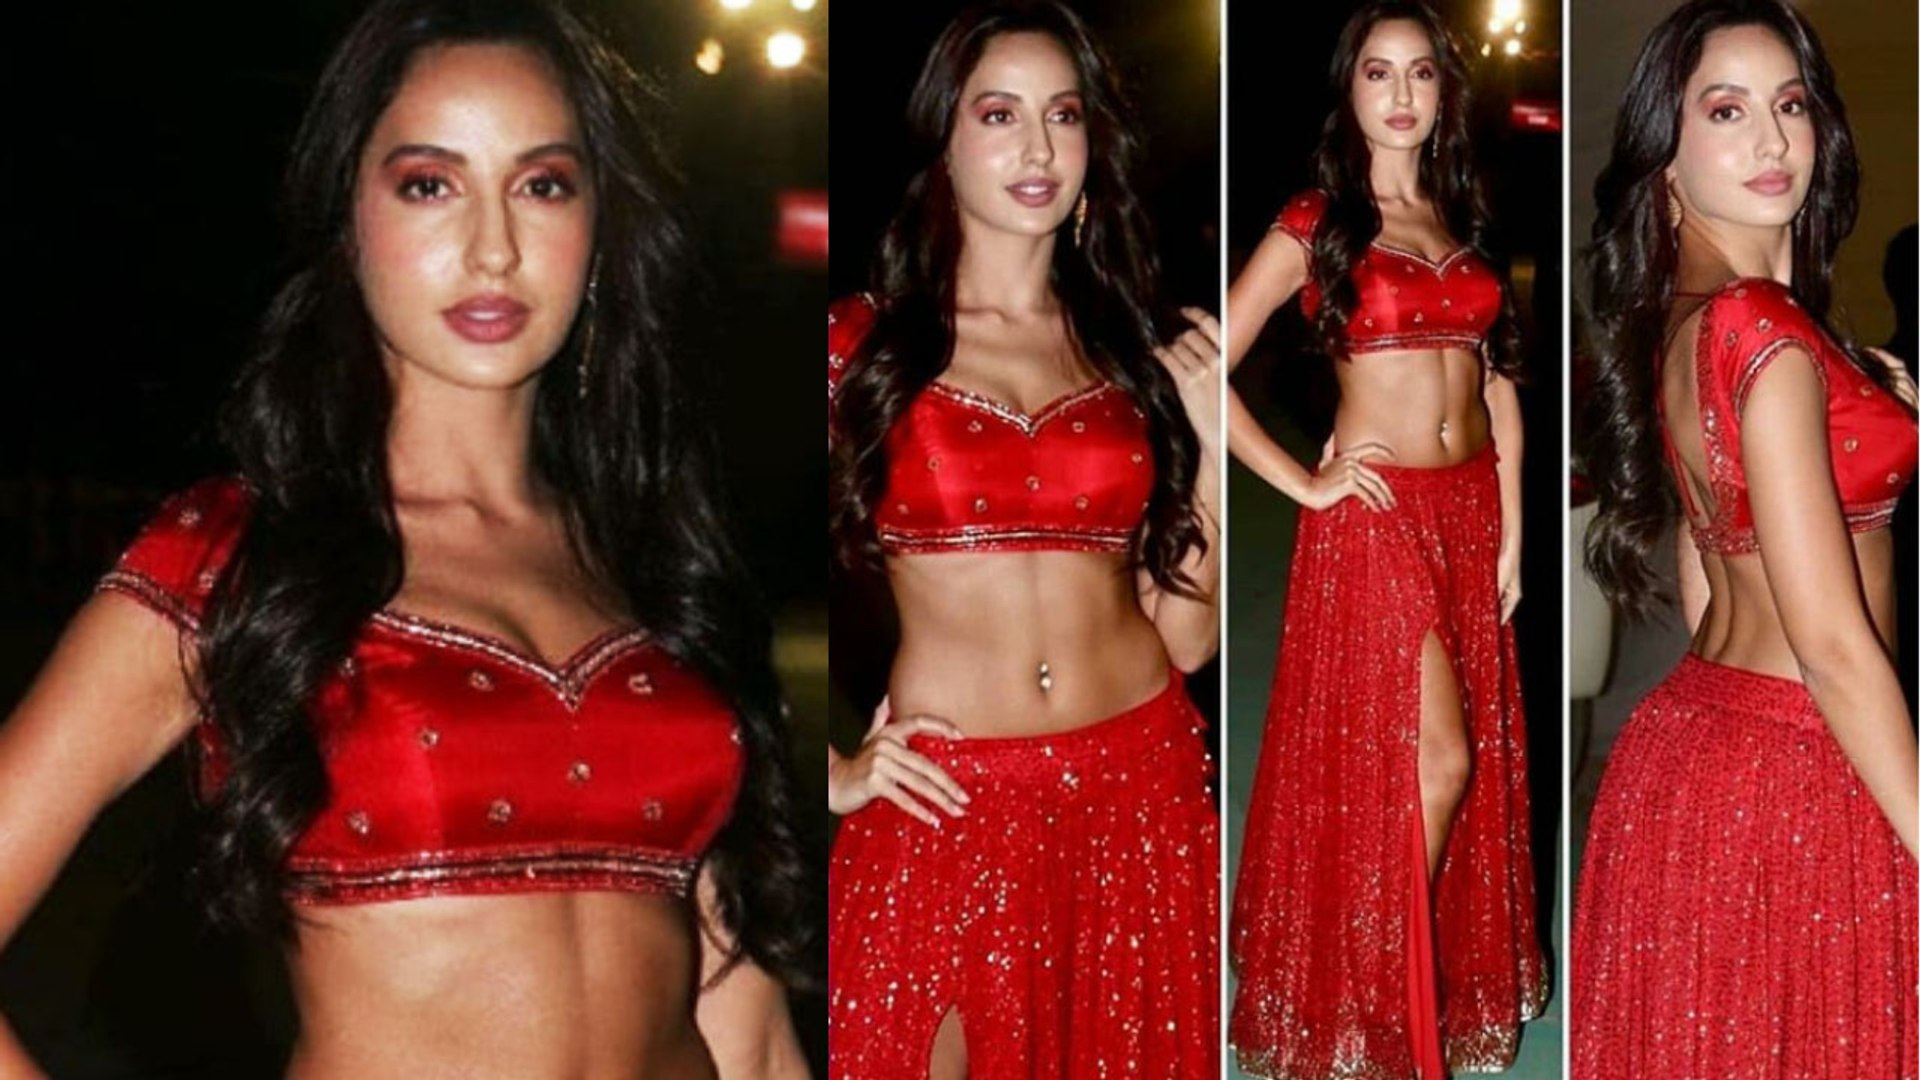 Nora Fatehi looks Super hot in Red outfit at Umang 2019 Awards | FilmiBeat